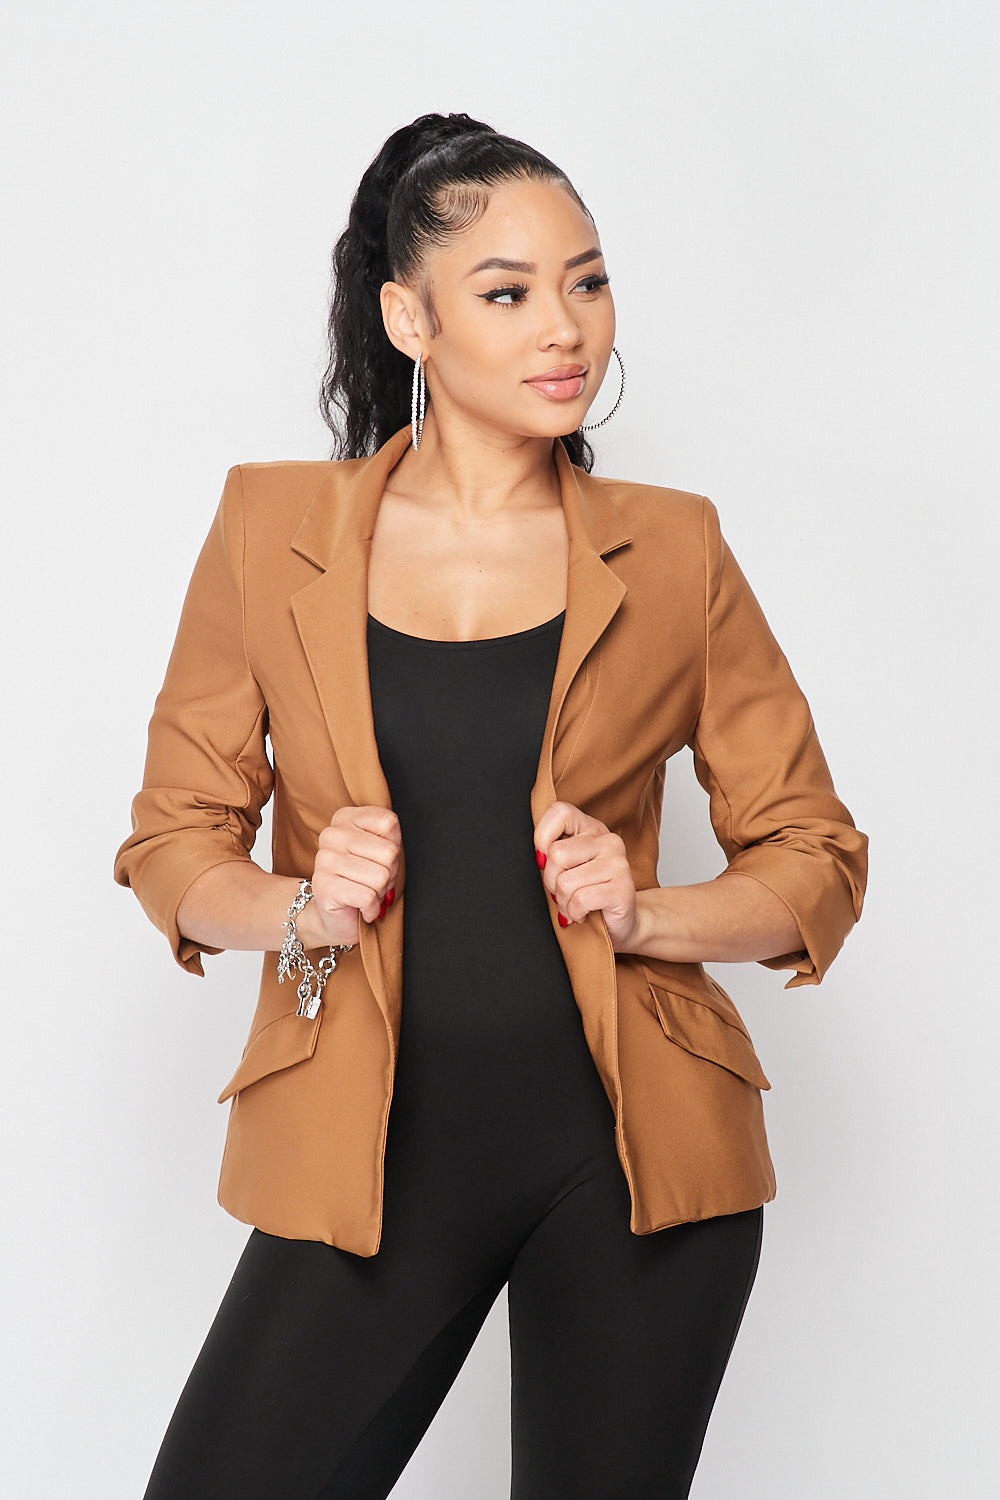 Classy Boss Quarter Sleeve Blazer Jacket in Caramel - Fashion House USA